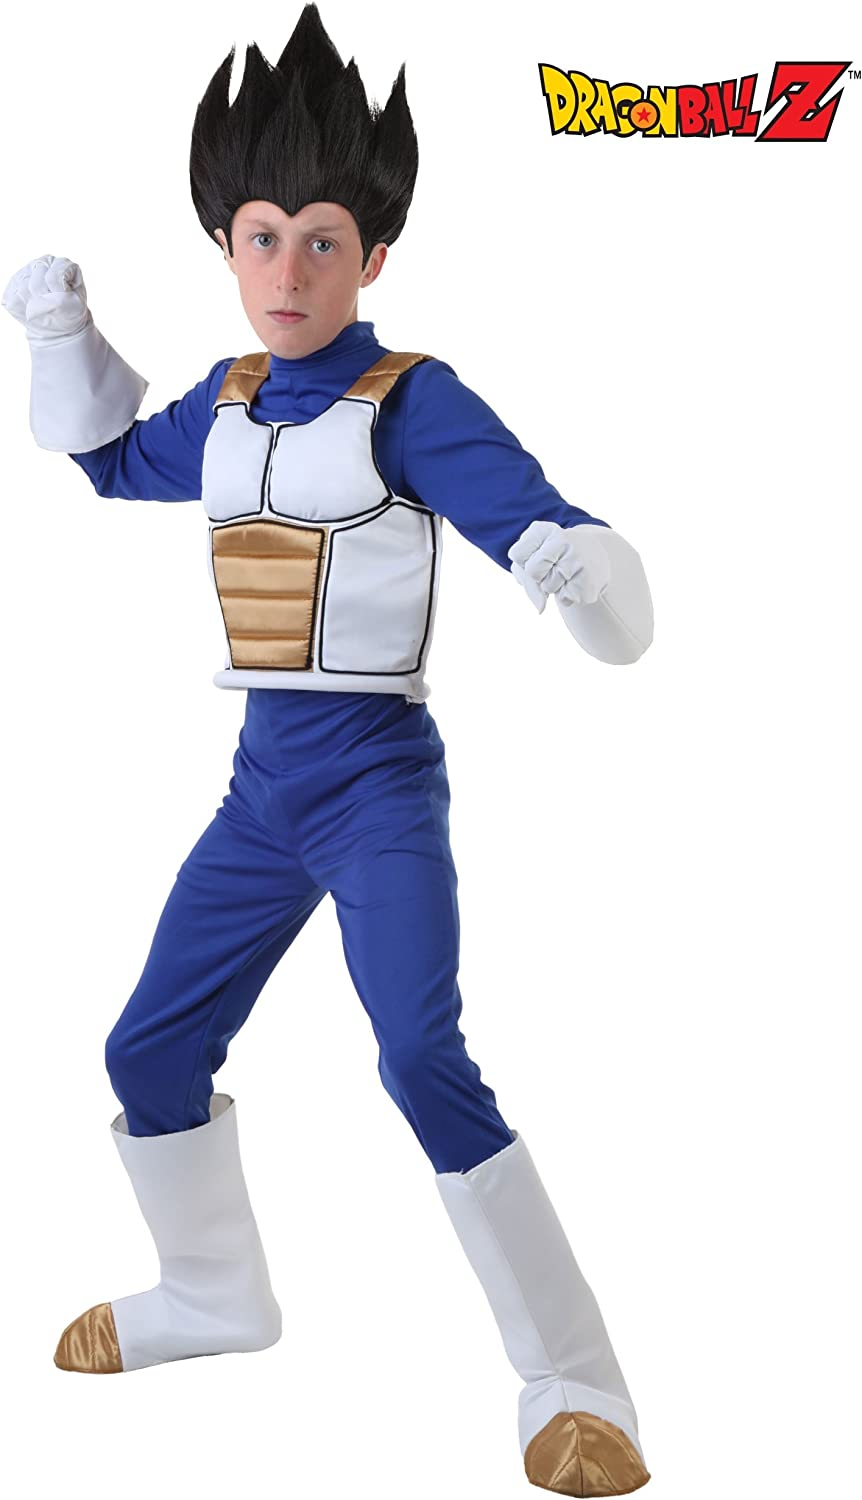 Amazon Com Dragon Ball Z Child Vegeta Costume Clothing The third season of dragon ball z anime series contains the frieza arc, which comprises part 2 of the namek saga. dragon ball z child vegeta costume